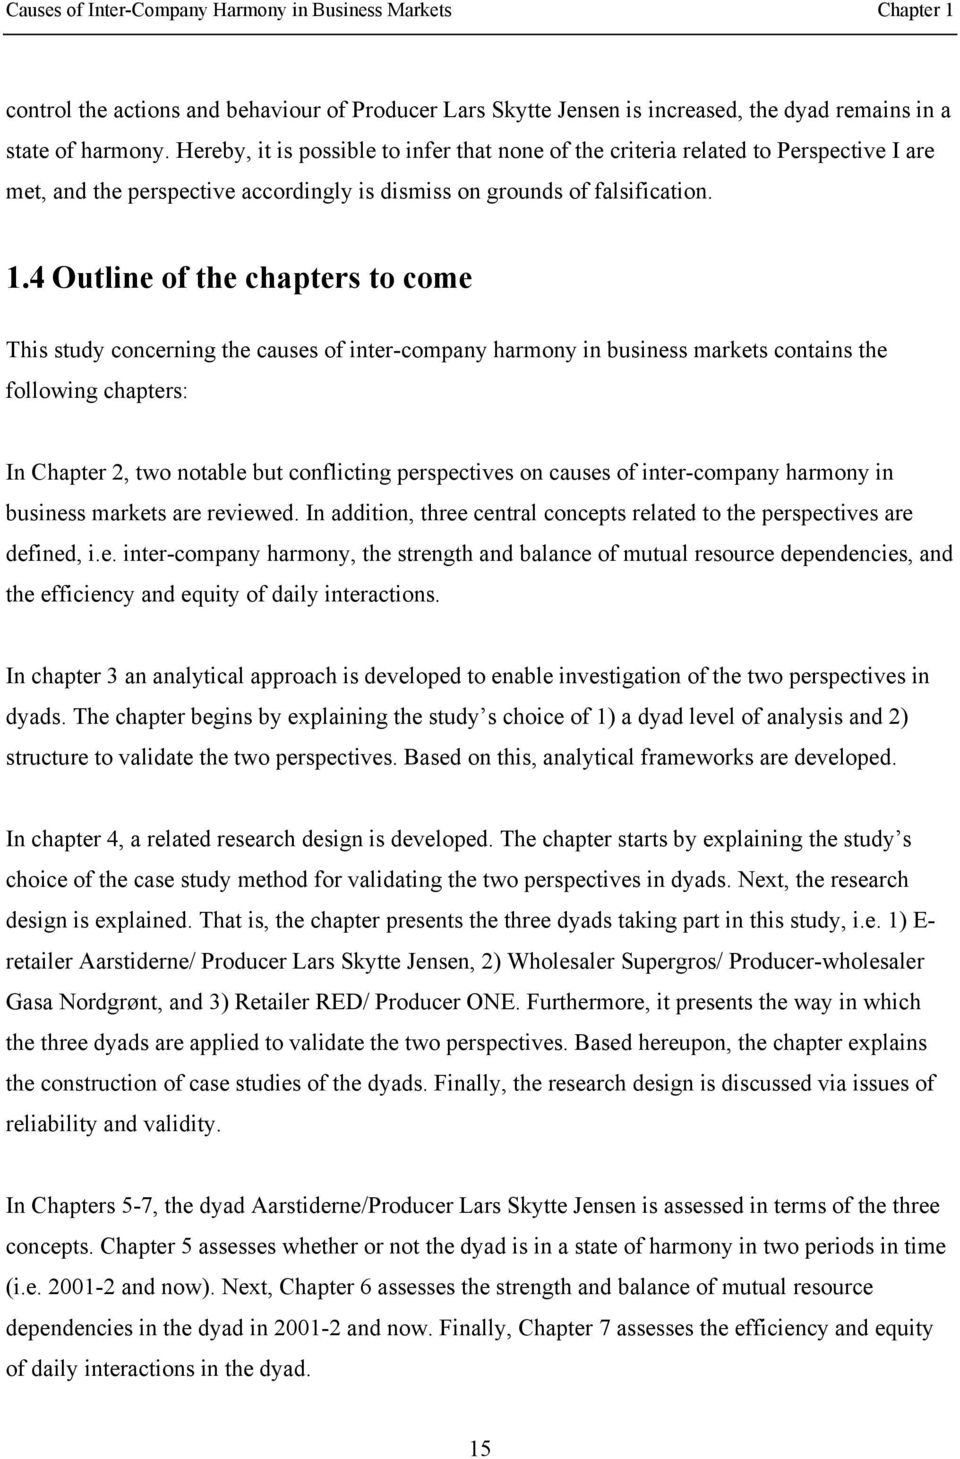 4 Outline of the chapters to come This study concerning the causes of inter-company harmony in business markets contains the following chapters: In Chapter 2, two notable but conflicting perspectives